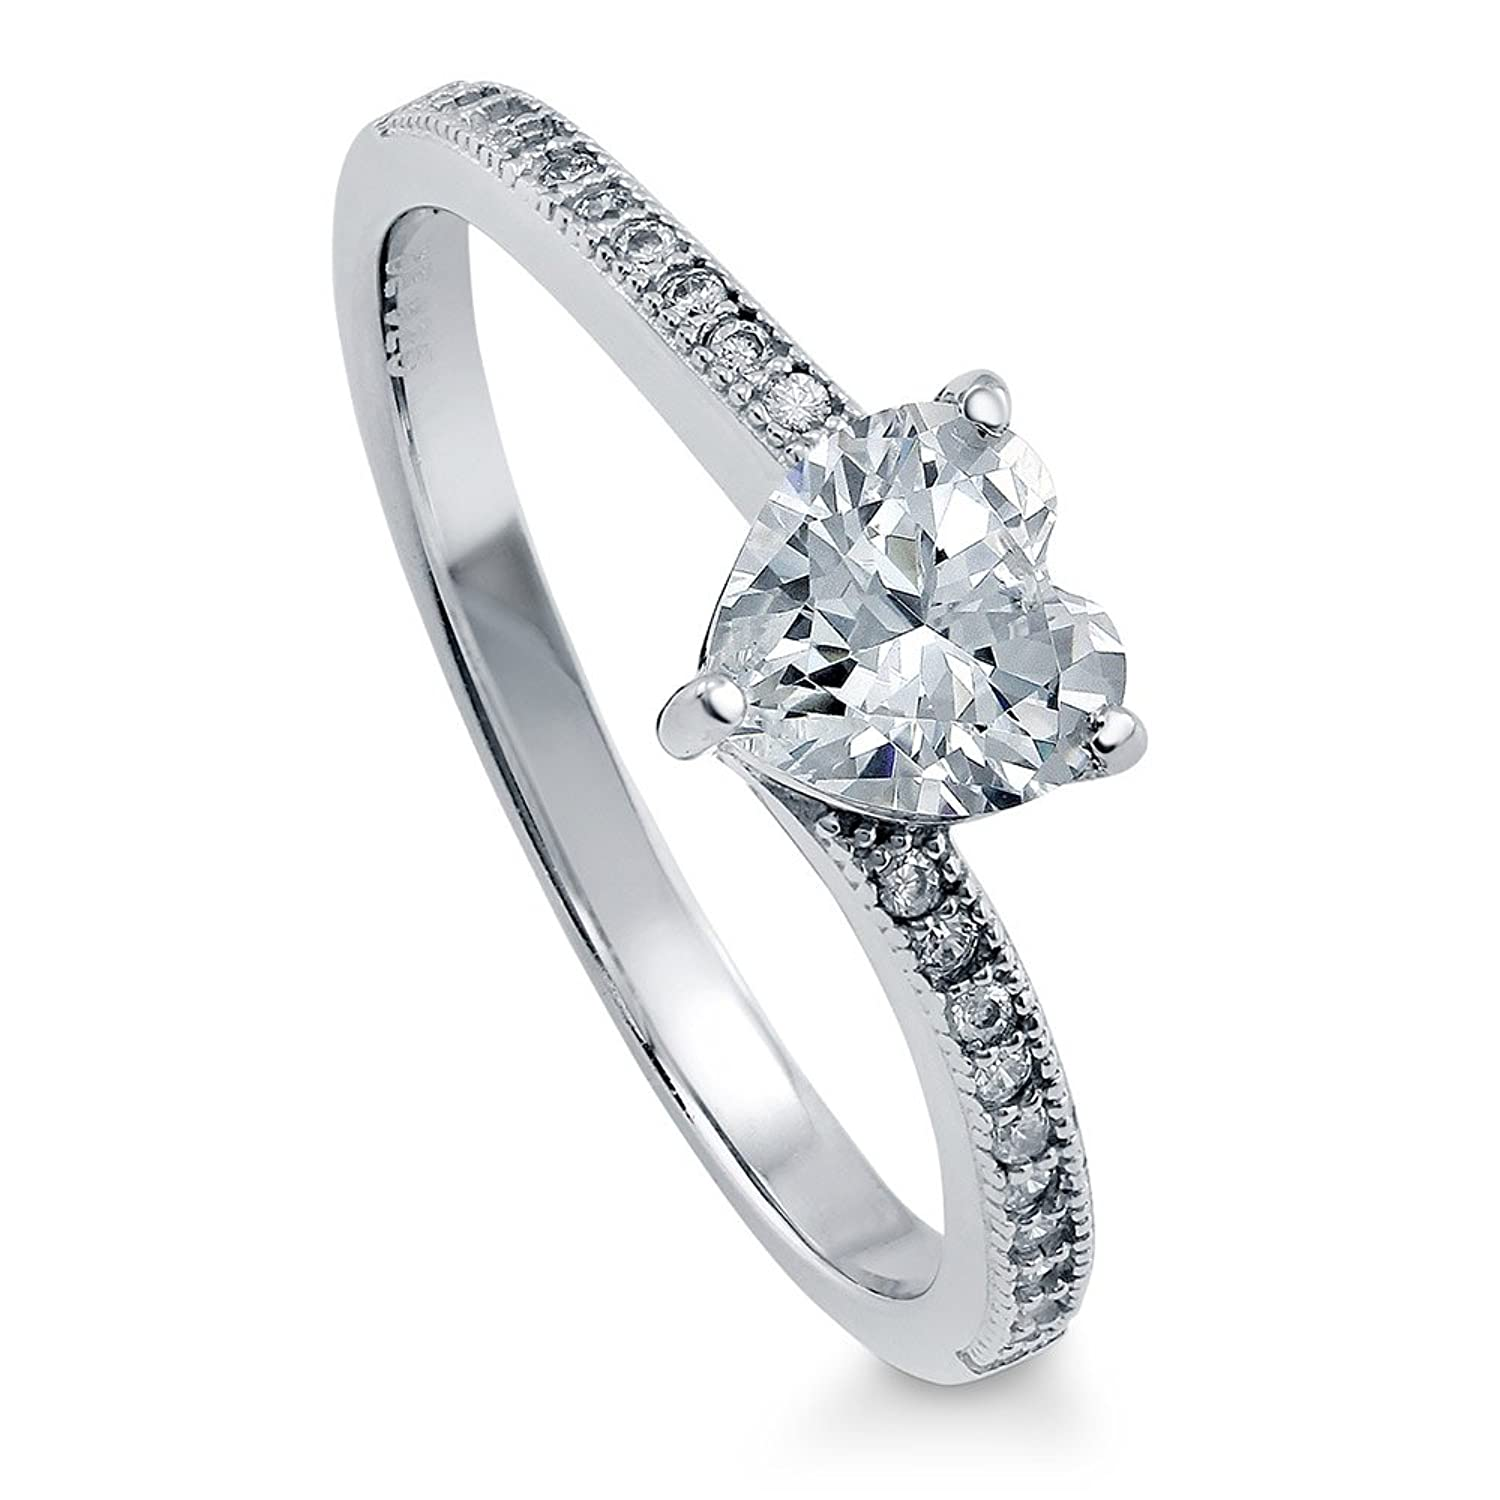 BERRICLE Sterling Silver Cubic Zirconia CZ Heart Solitaire Promise Engagement Wedding Ring